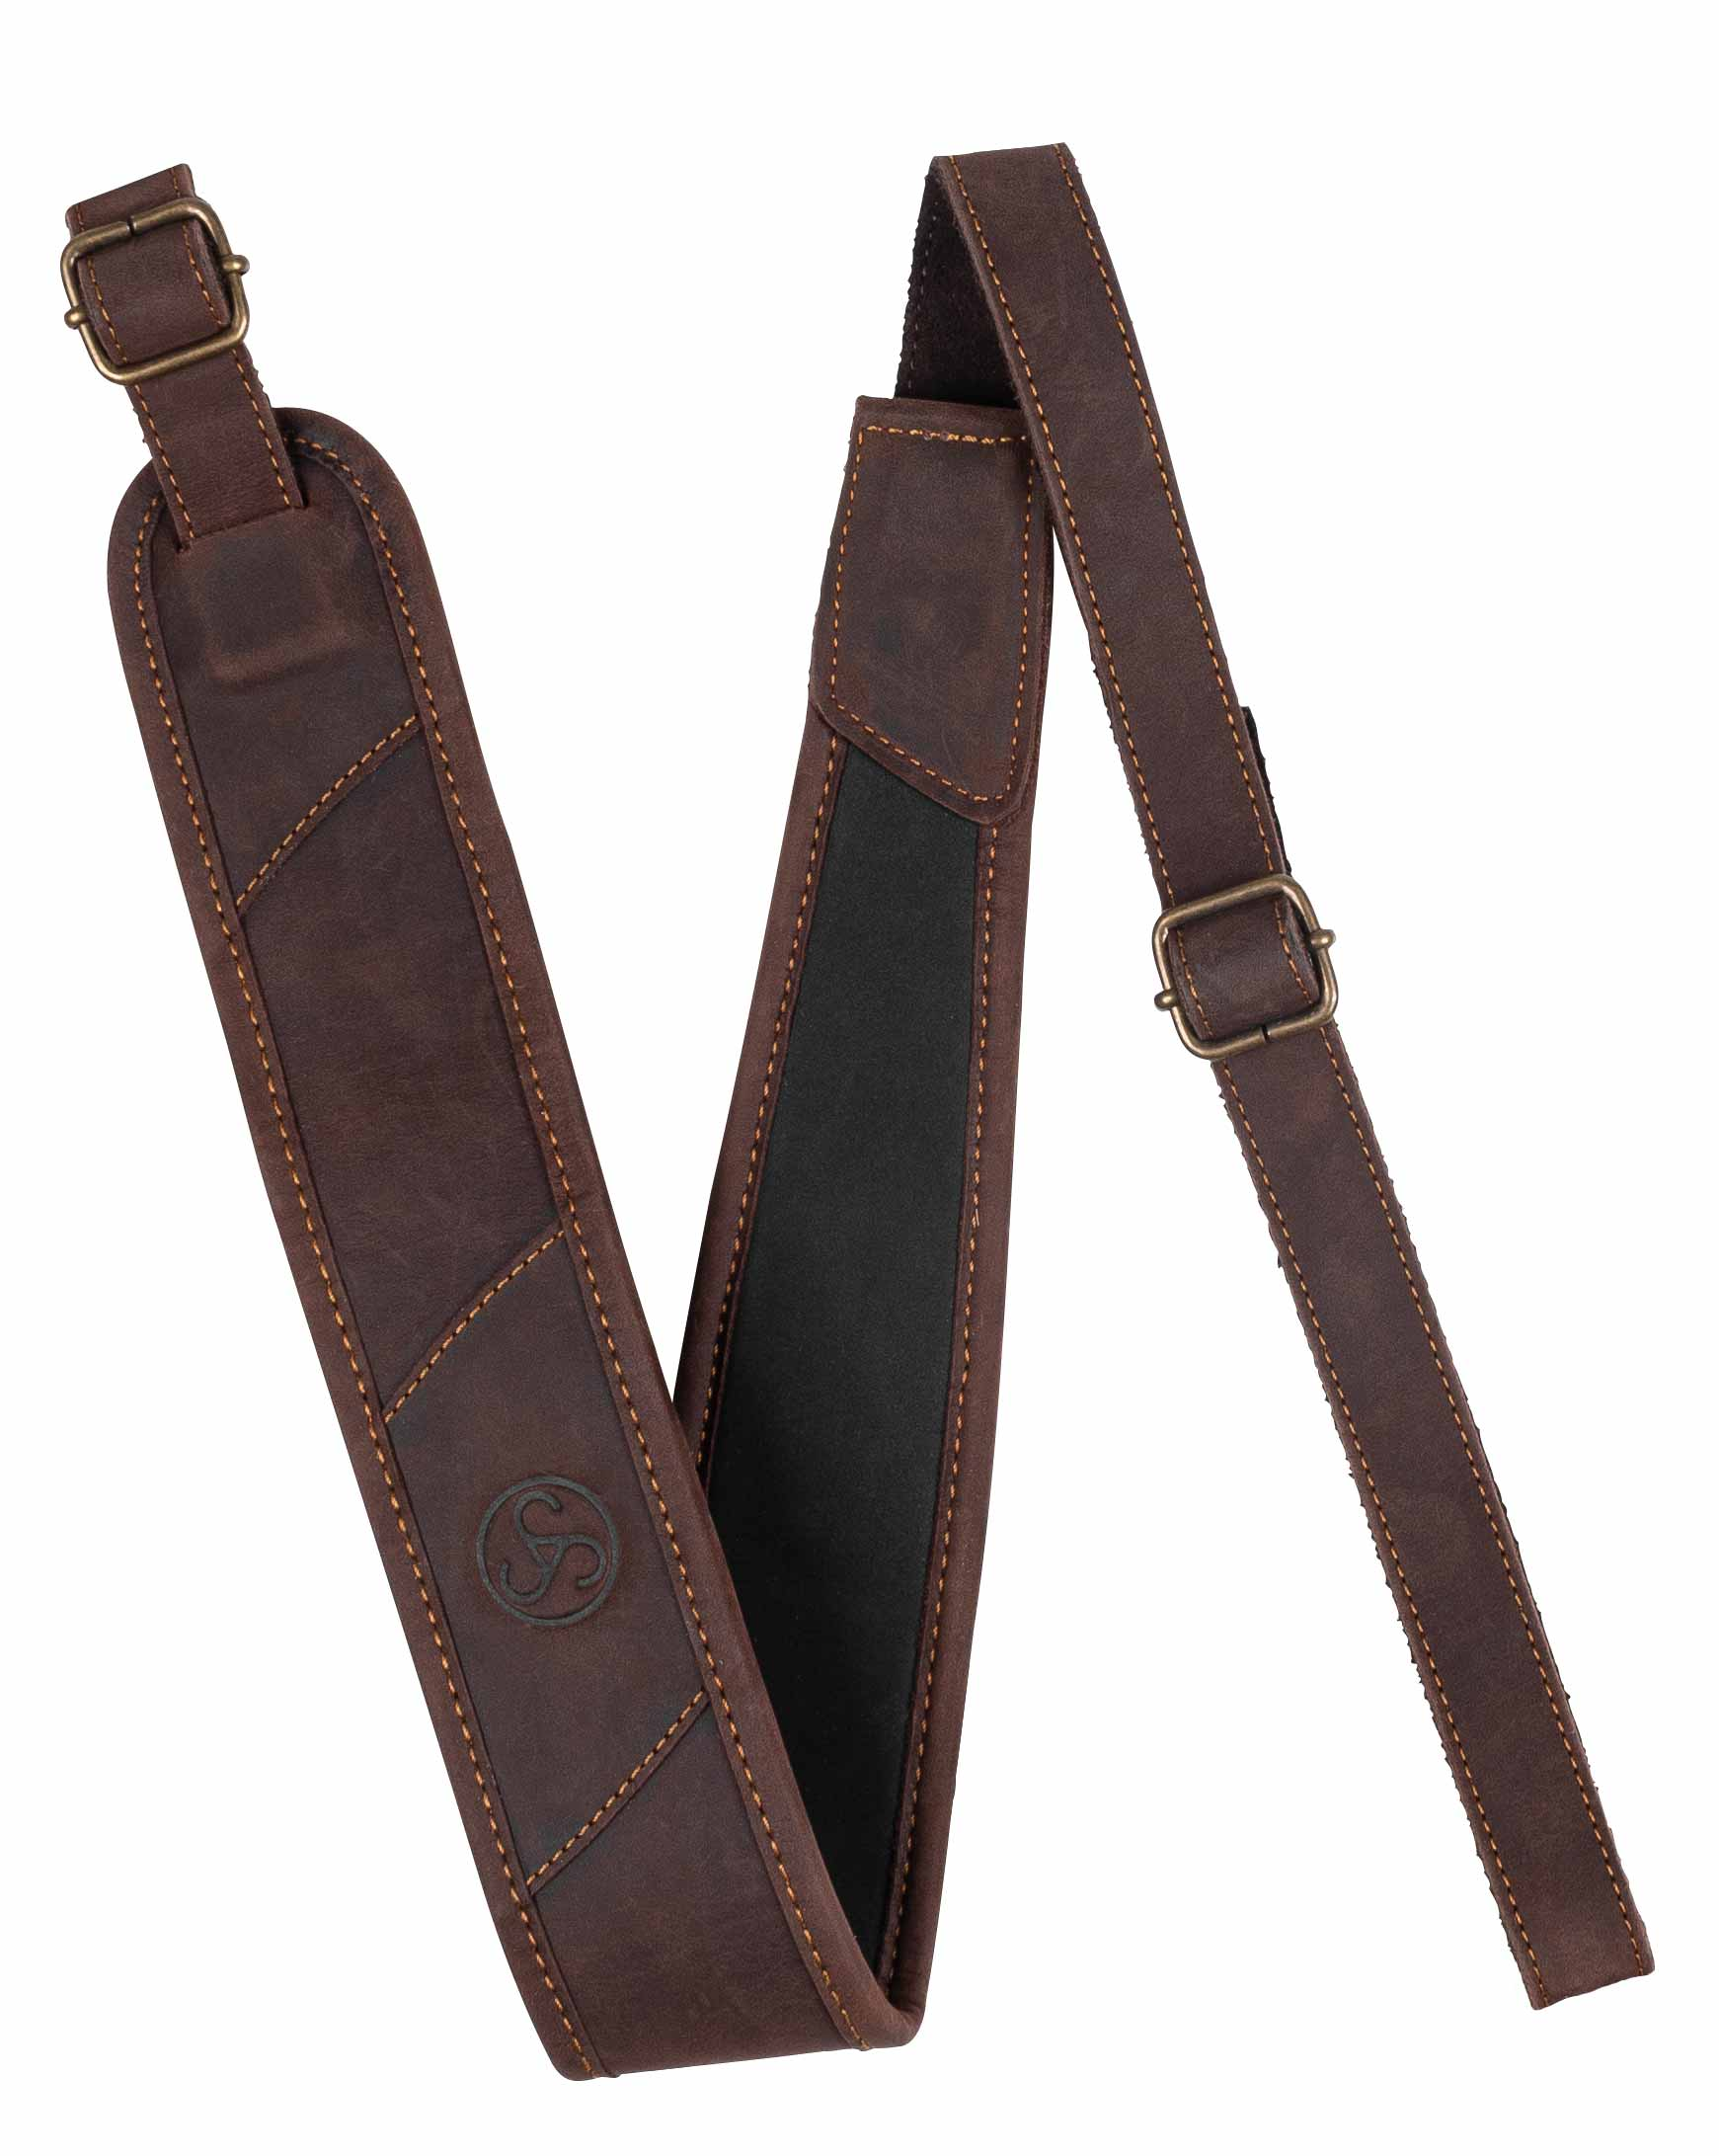 SAUER Rifle Sling Leather